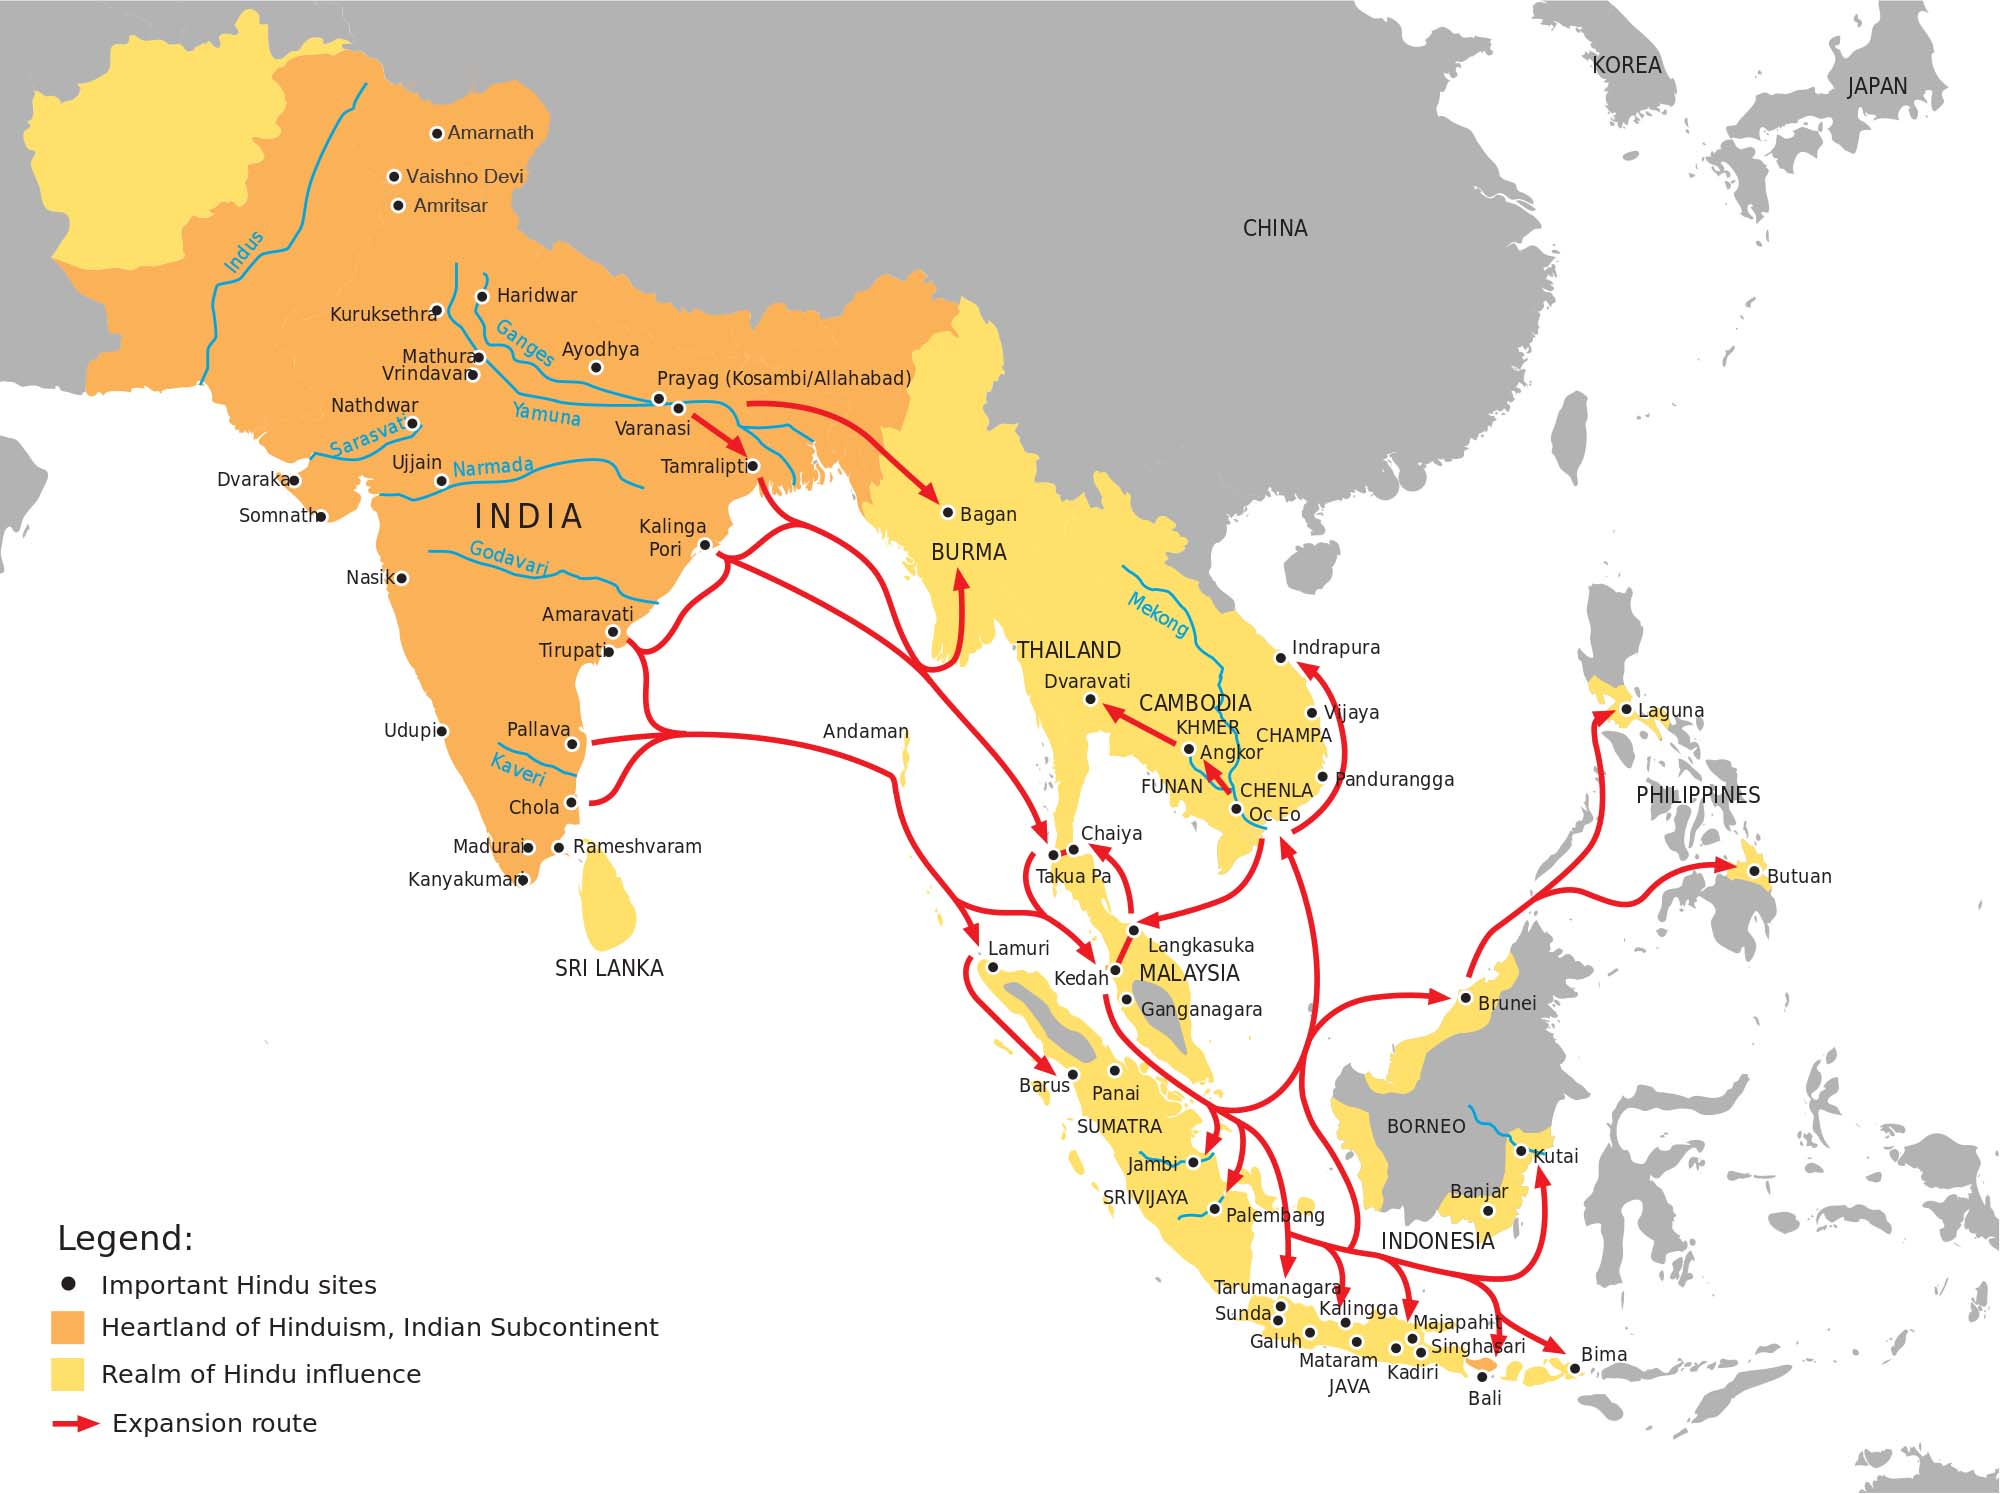 India's Civilizational Ties: The Key to a Strong Asia-Pacific ... on world map with countries, map of canada, map of taiwan, map of israel, map of africa, map of ukraine, map of middle east, map of world countries, map of thailand, map of united states, map of european, map of alaska, map of mediterranean countries, map of eastern countries, map of norway, map of europe, map of asia, map of cambodia,